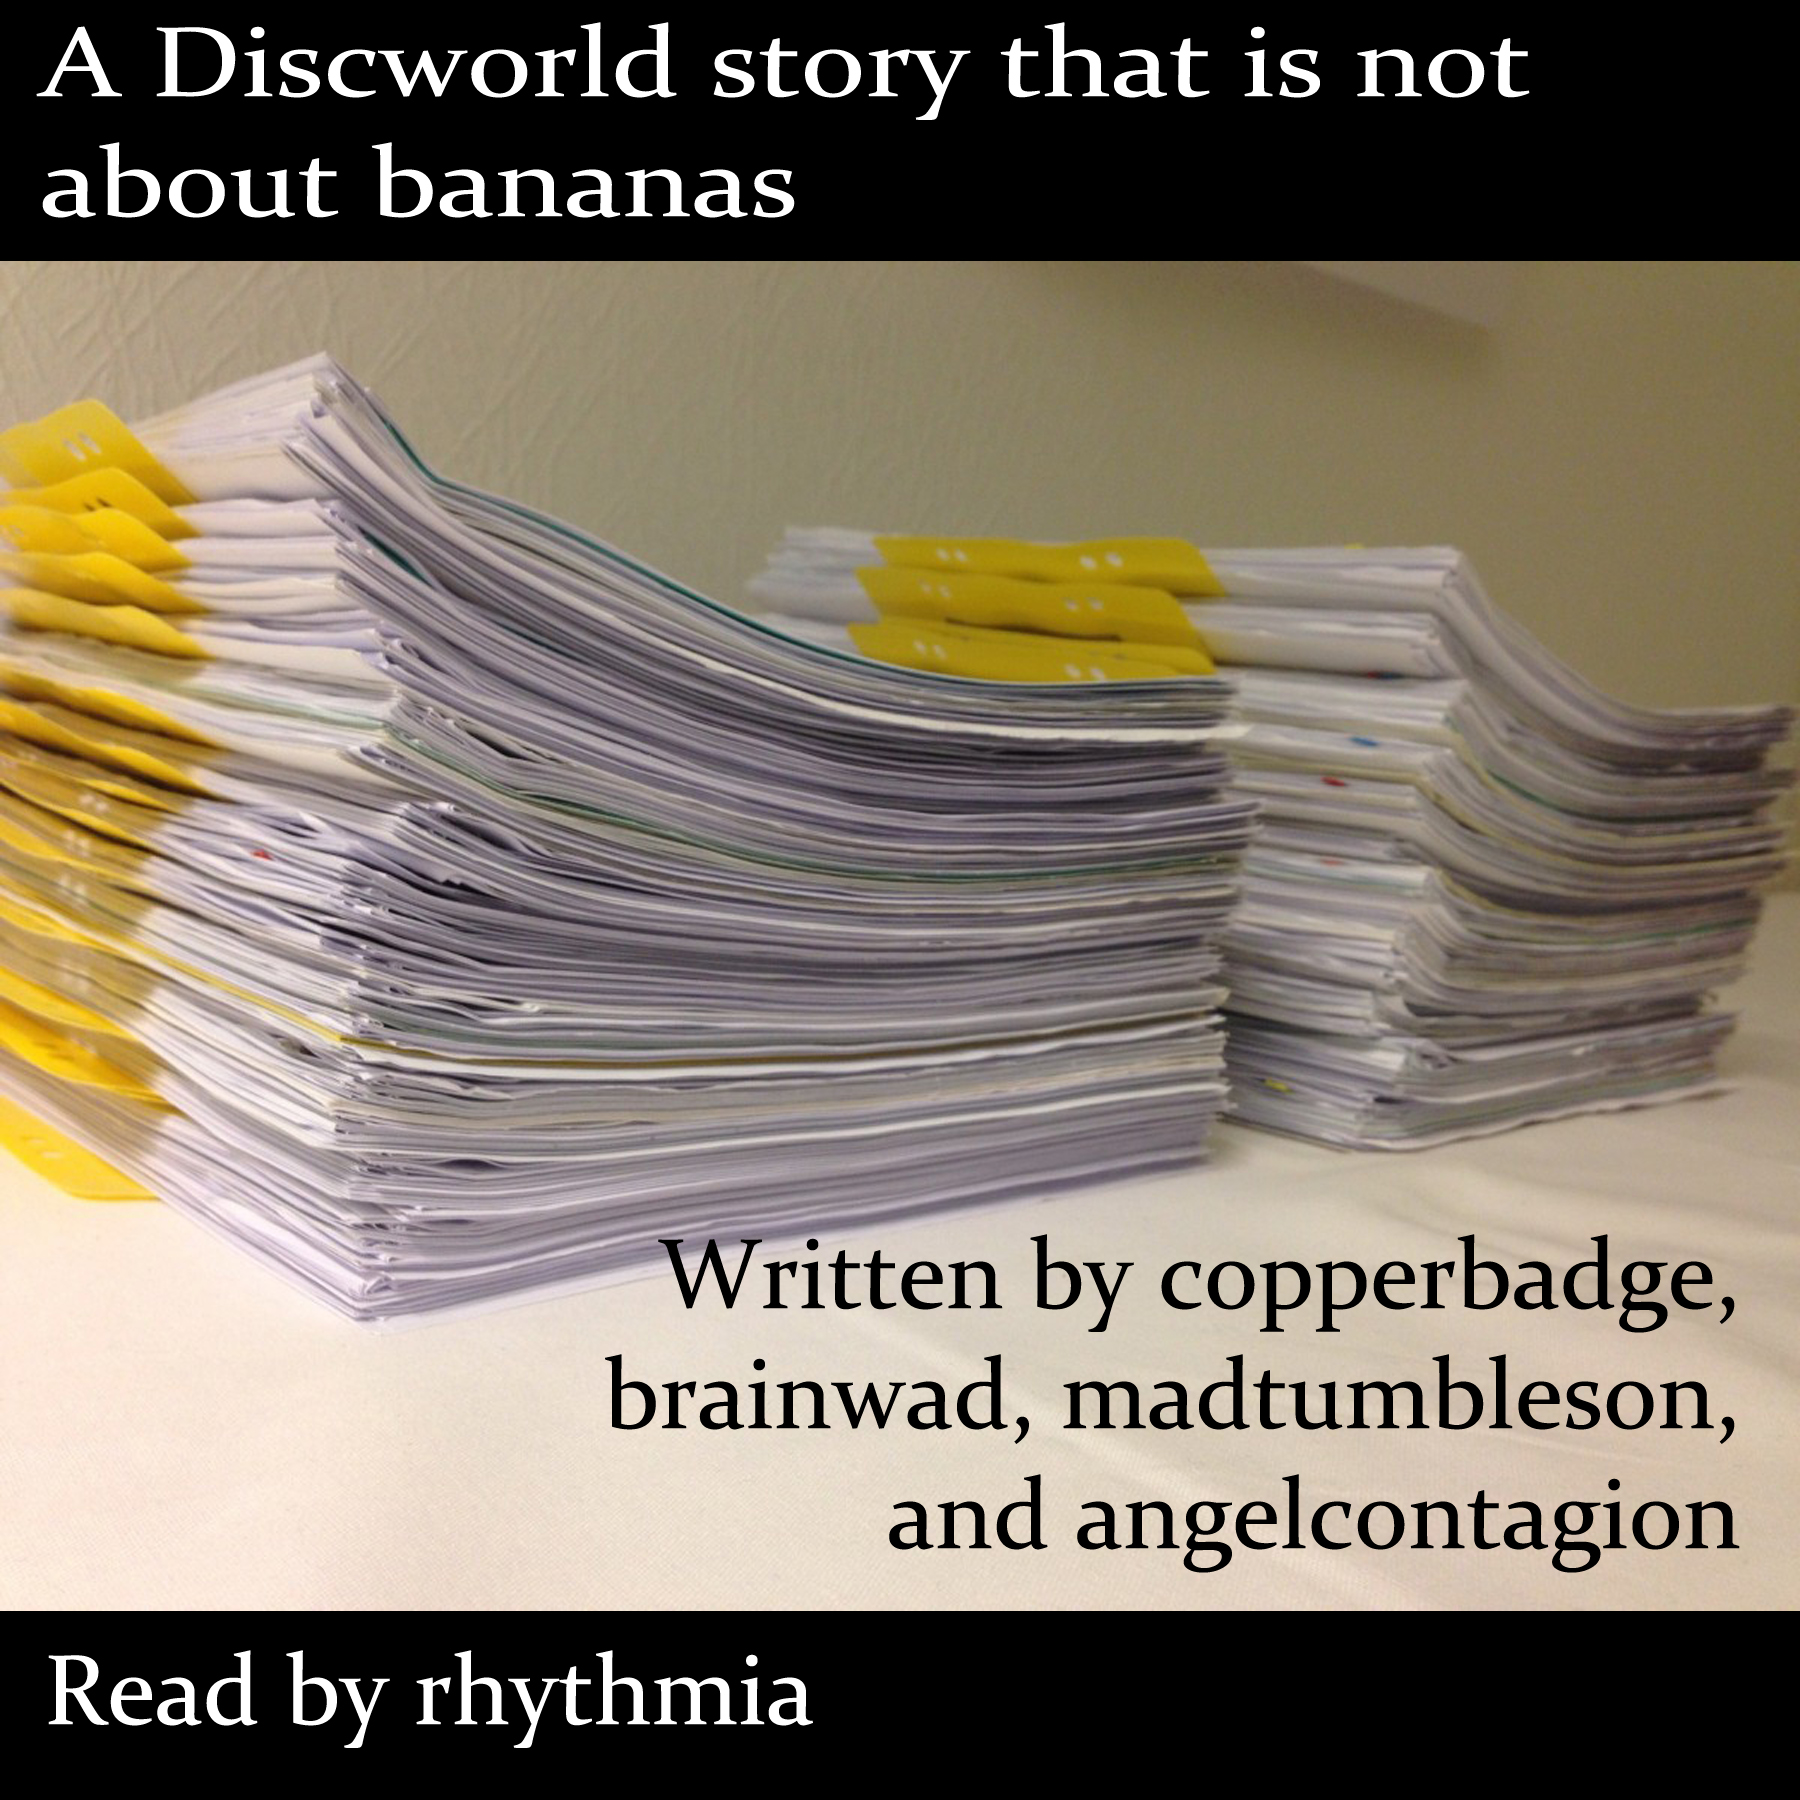 A photo of a stack of paperwork, with yellow folder tabs sticking out. Text above reads: A Discworld story that is not about bananas. Text on the folders reads: Written by copperbadge, brainwad, madtumbleson, and angelcontagion. Text below reads: Read by rhythmia